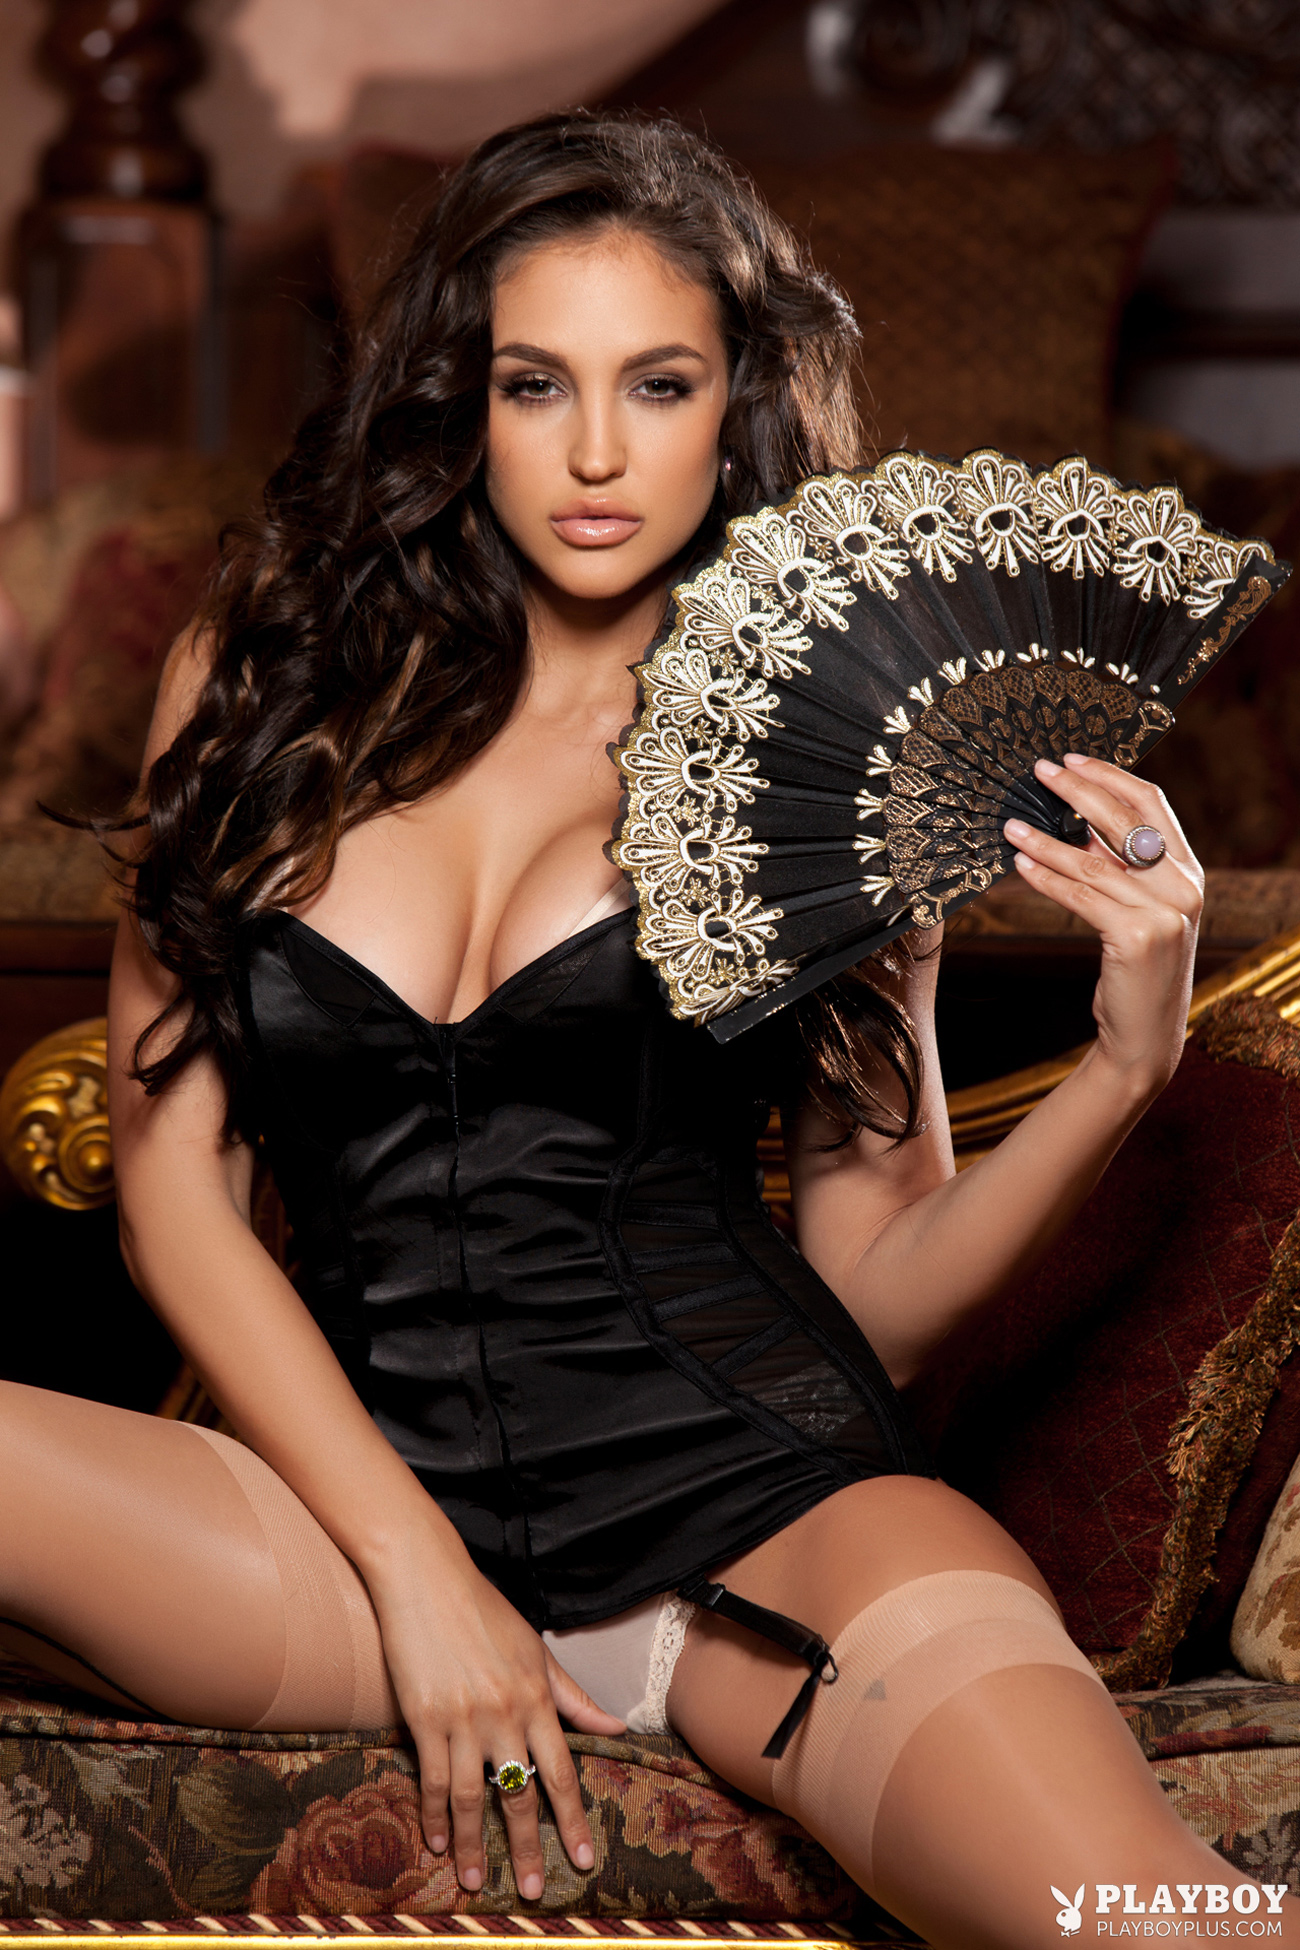 jaclyn-swedberg-corset-stockings-playboy-03